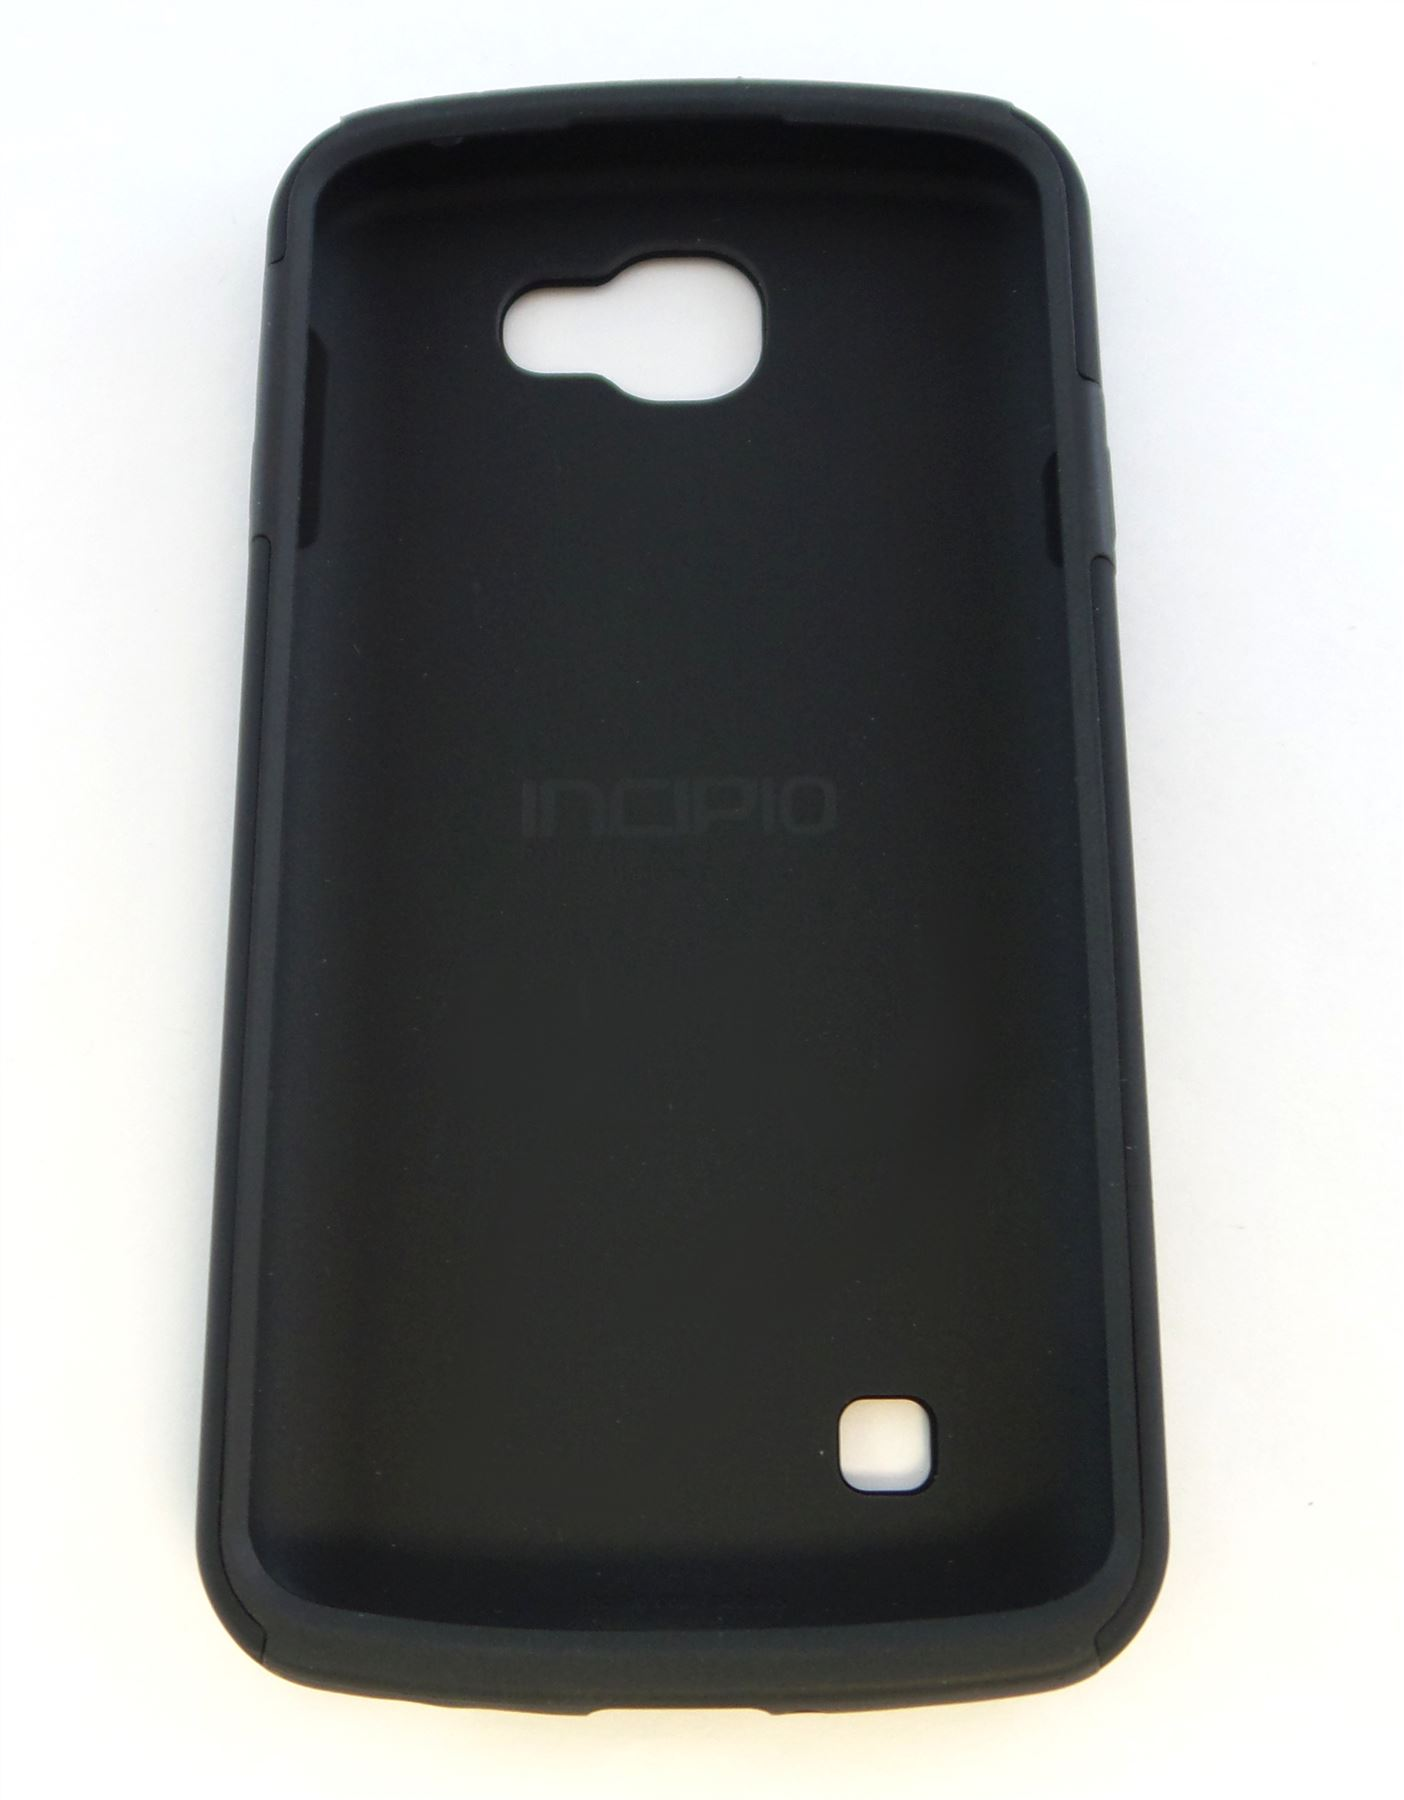 new product 23b66 12711 Details about Incipio DualPro Dual Layer Protection Case for LG K4 LTE  Black LGE-300-BLK-V